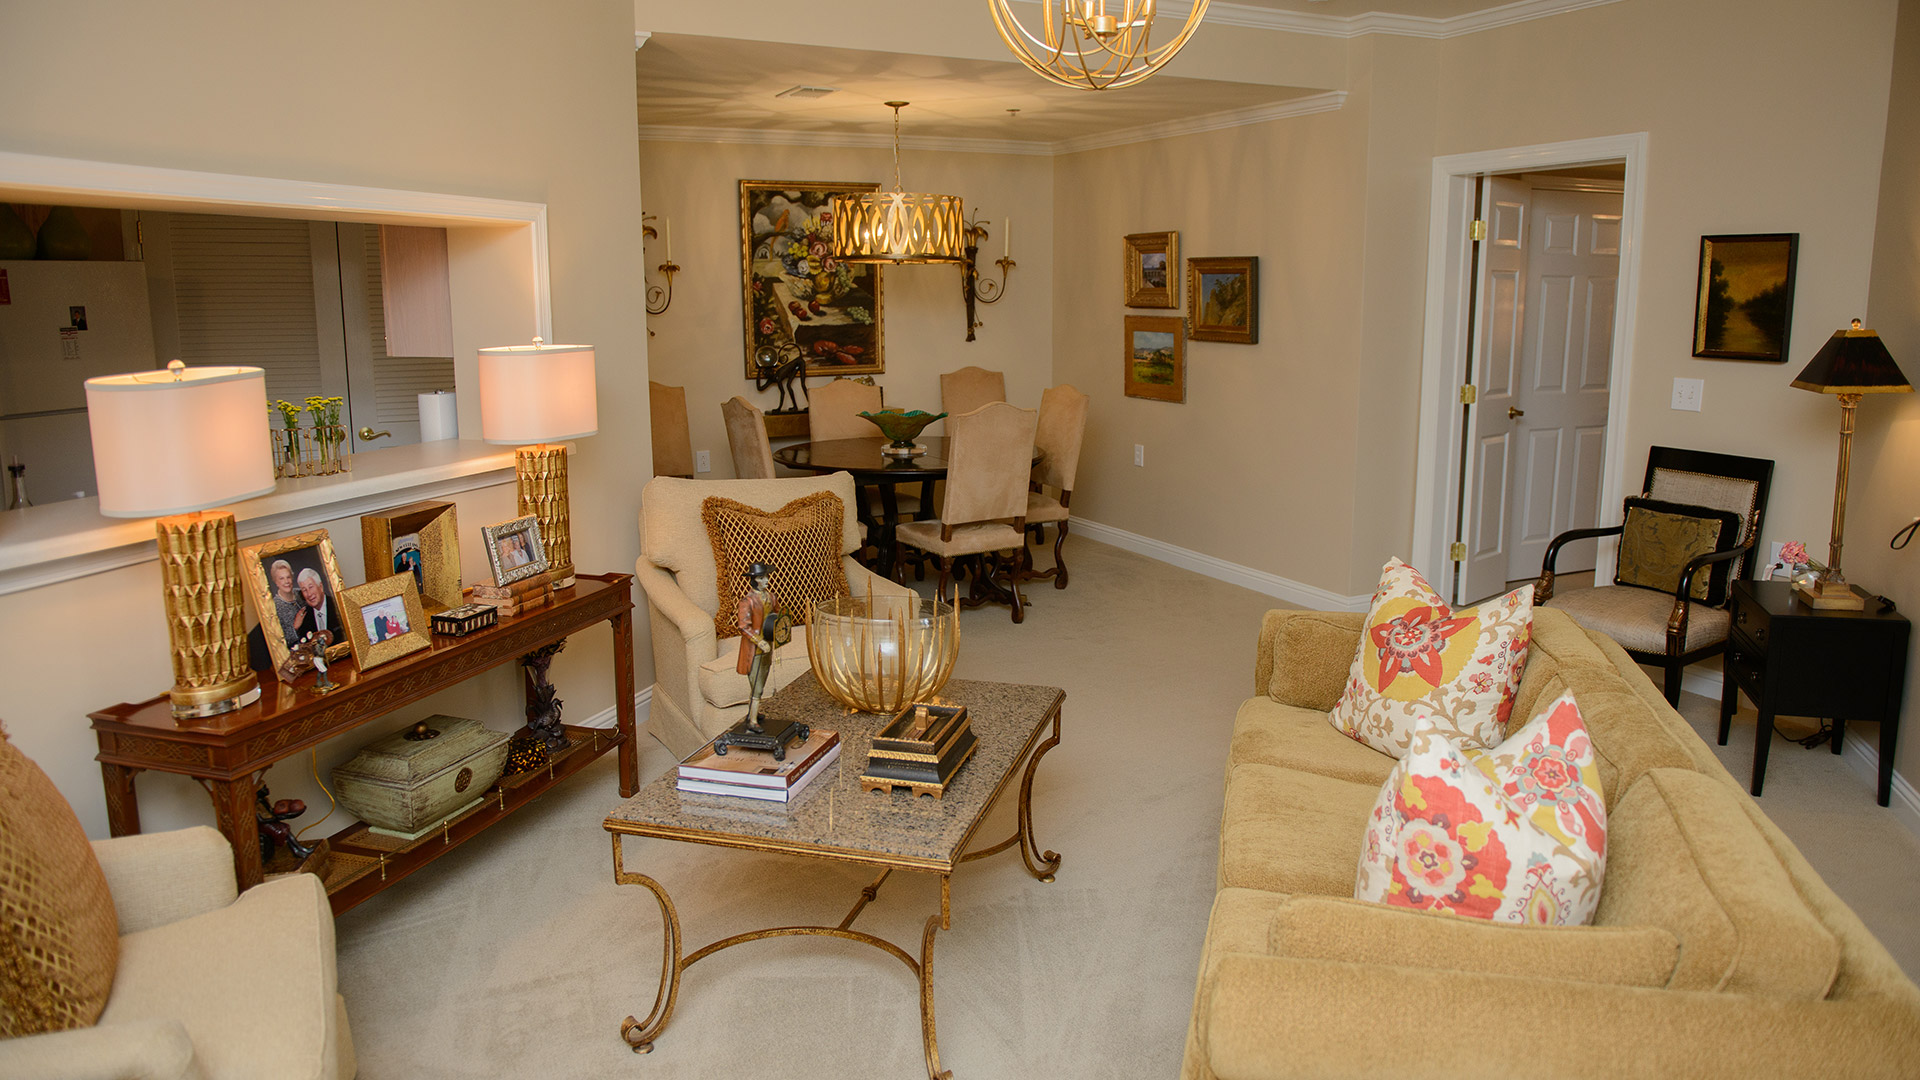 Capstone Village living and dining rooms decorated with lamps, sofas, armchairs and a dining room set